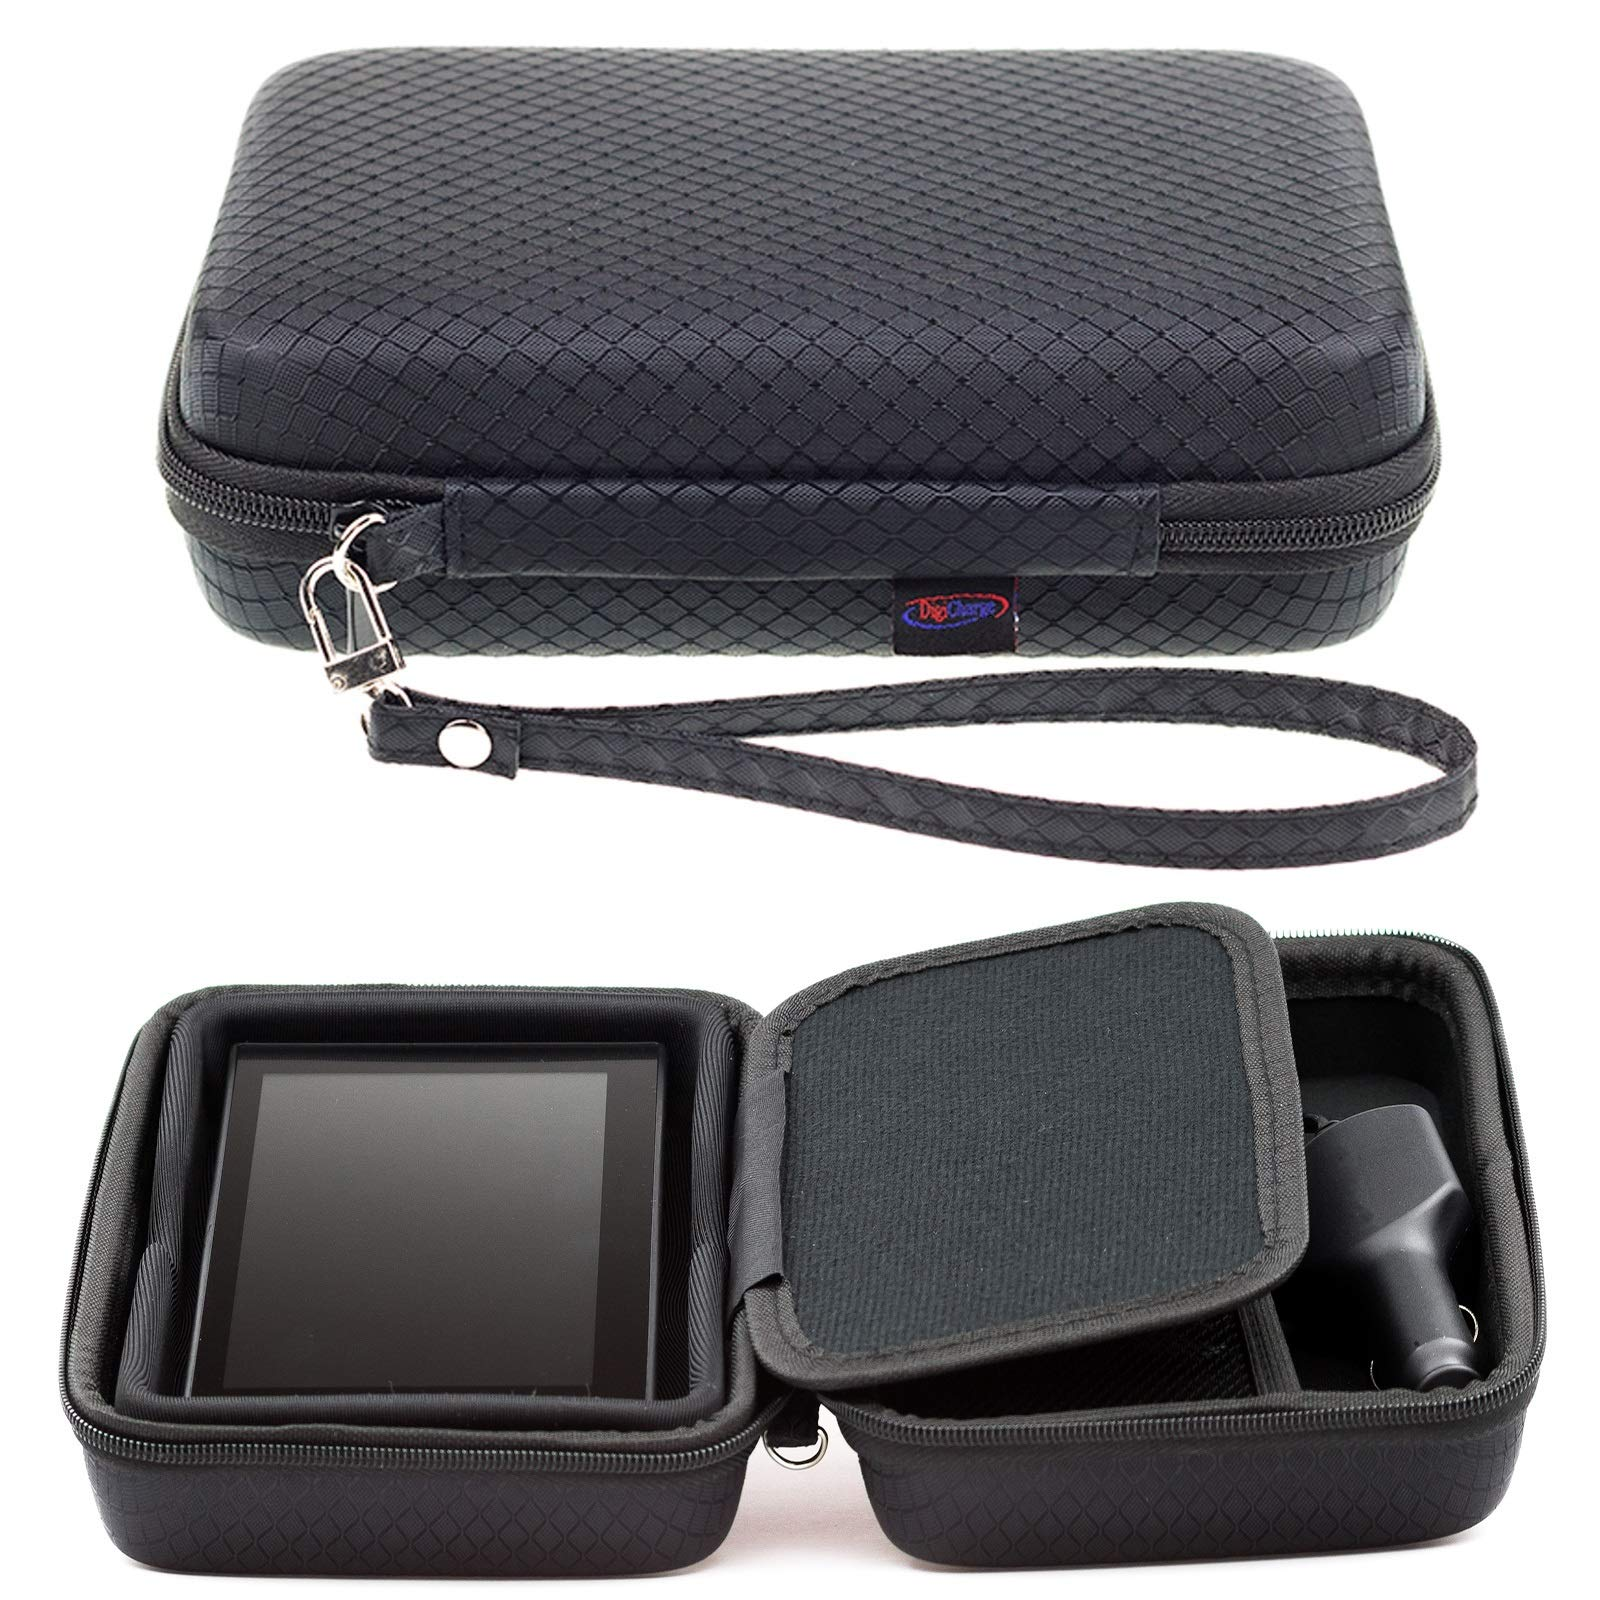 Digicharge Black Hard Carrying Case for Garmin Drive DriveSmart 60LM 60LMT 61LMT-S 61LM RV 660LMT Nuvi 68 67 68LM 67LM 2639LMT 2639 Fleet 670 660 GPS Sat Nav with Accessory Storage and Lanyard by Digicharge